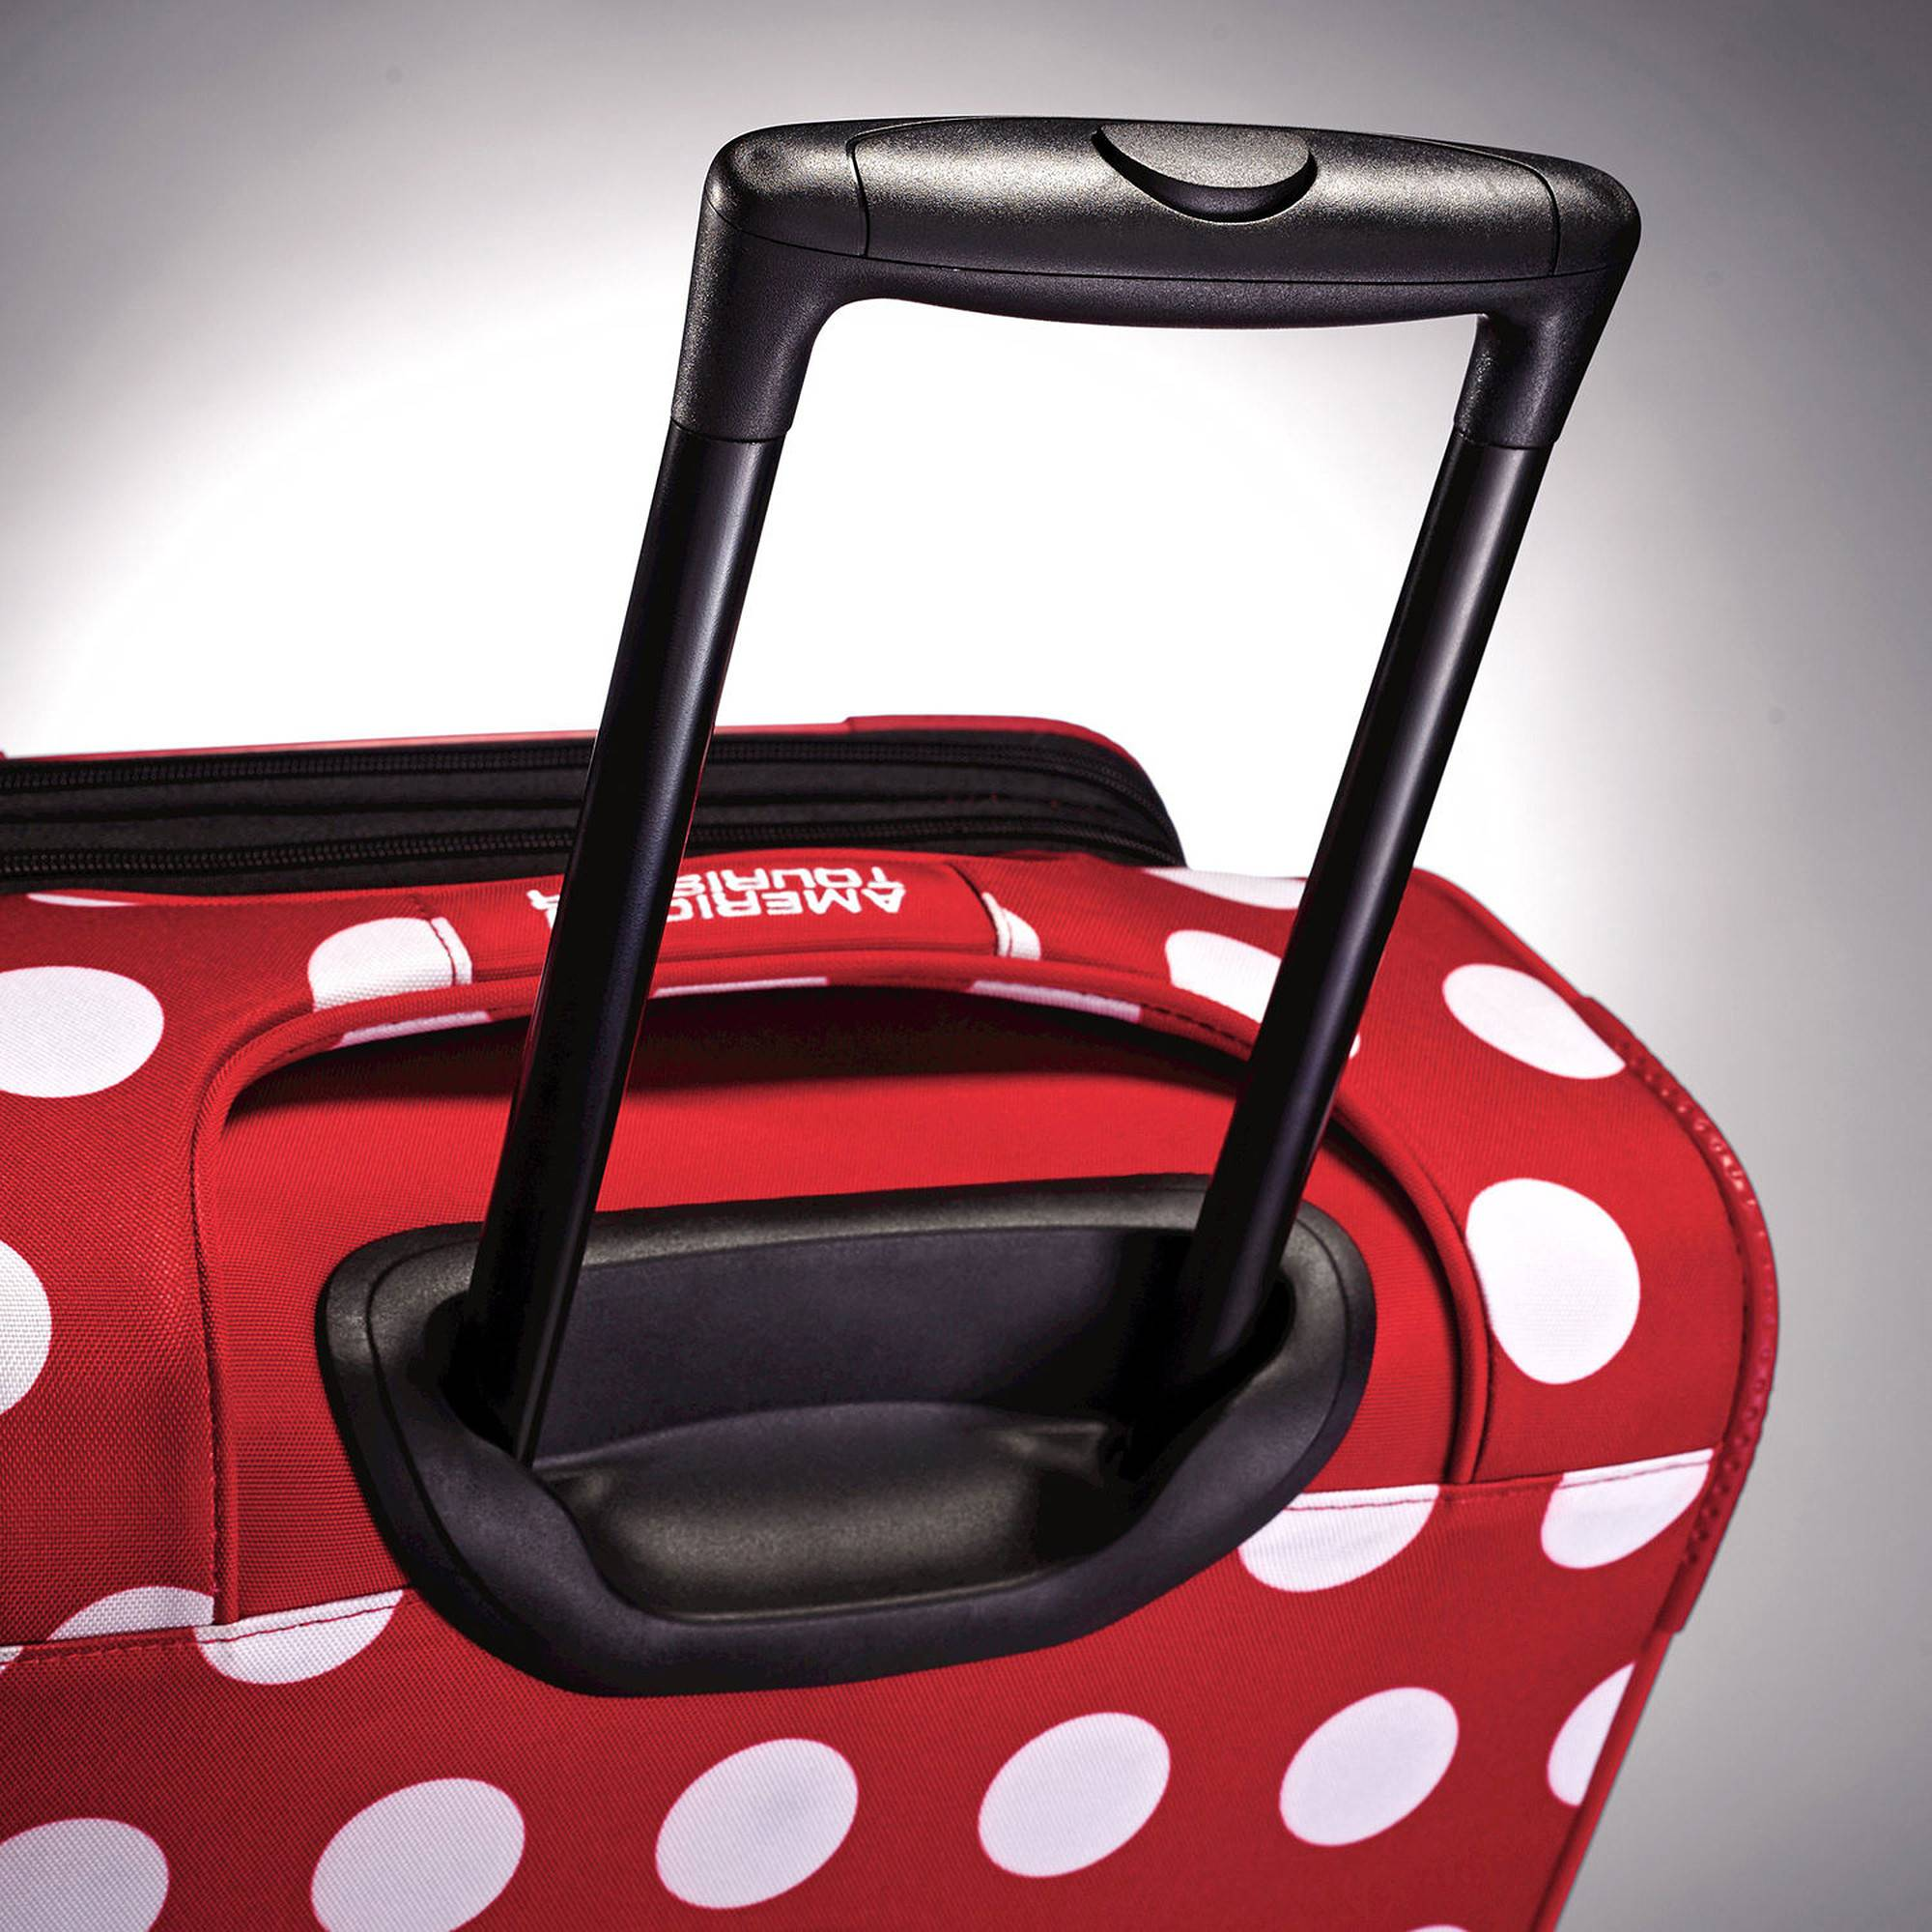 ... Samsonite American Tourister Disney Minnie Mouse 21 Spinner 67614View 8 130b7928a6e92